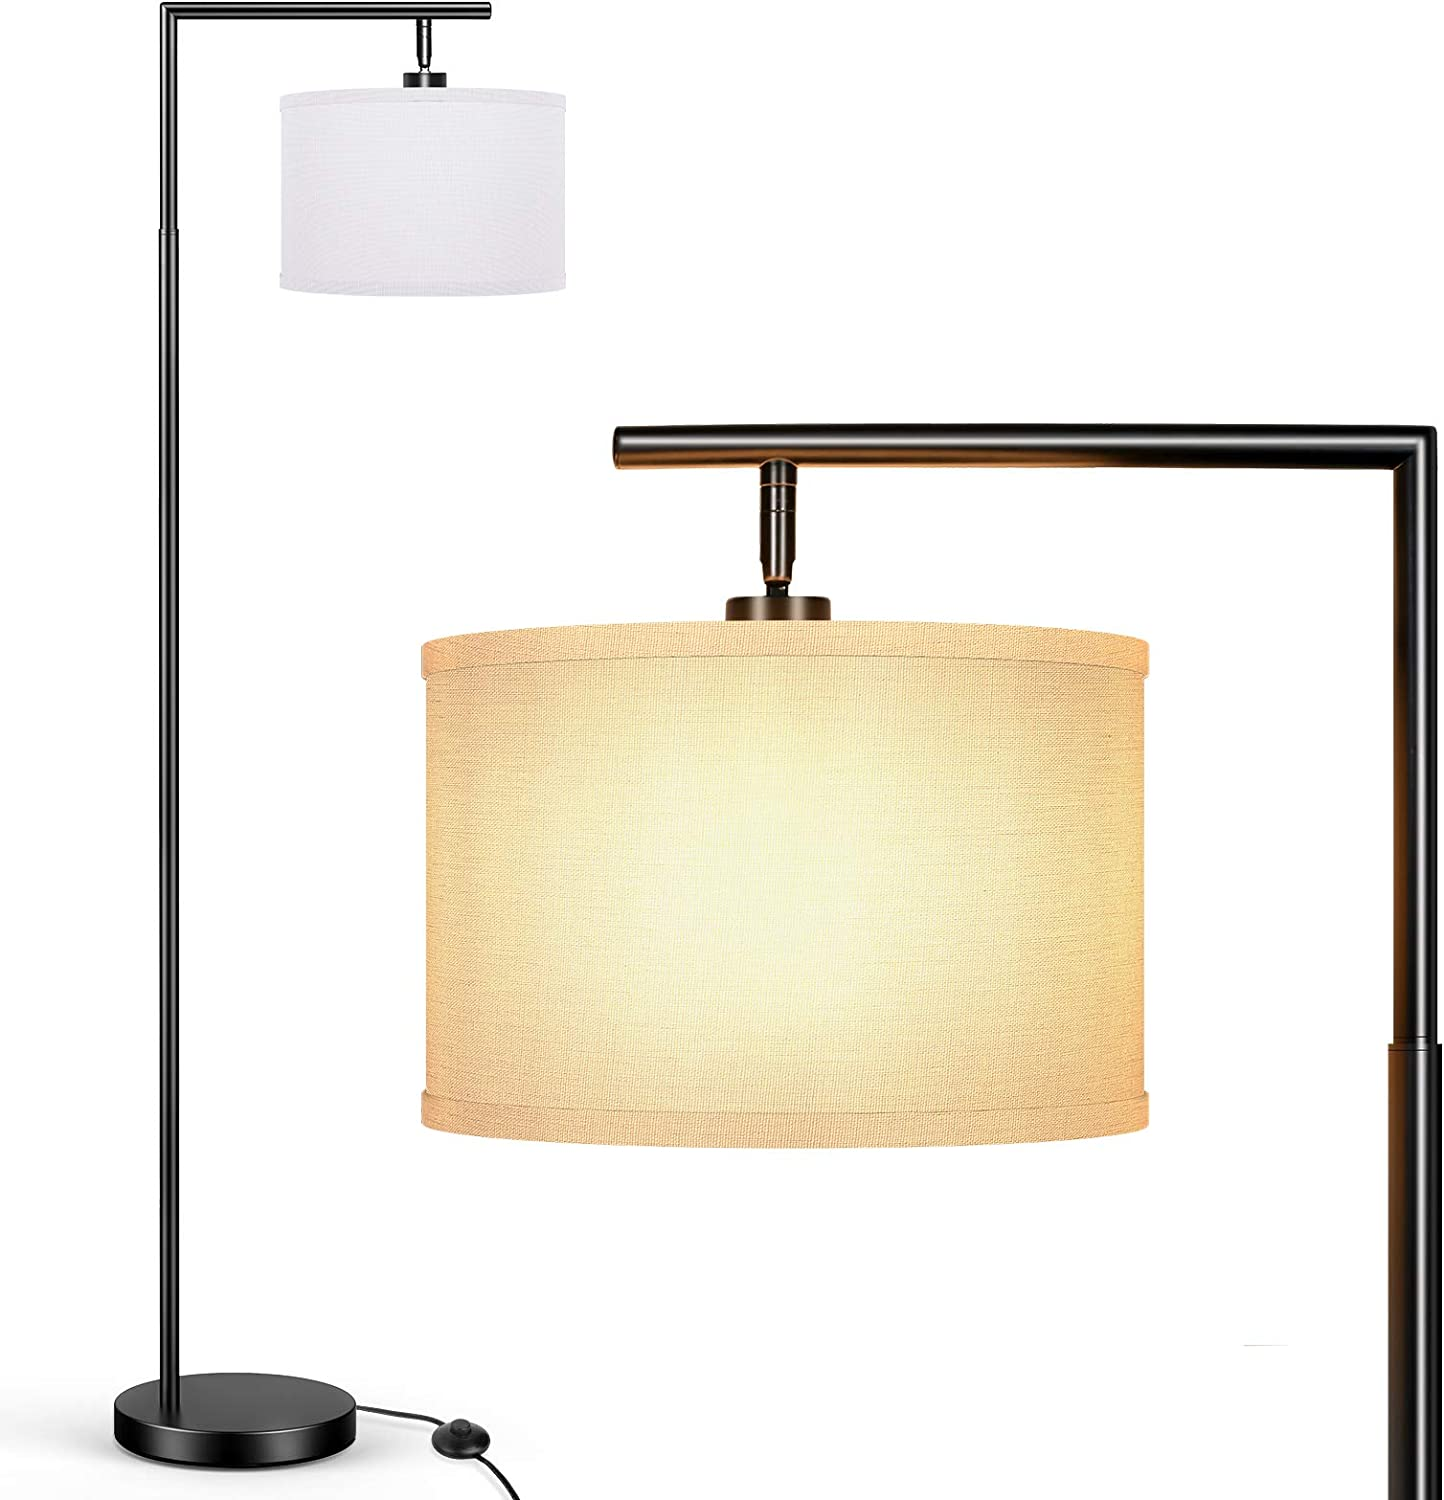 BesLowe Floor Lamp for Living Room, Montage Modern Standing Lamp with Hanging White Fabric Lampshade, Tall Pole Classic Reading Light Overhangs Lamp with Foot Switch for Bedroom Hotel Guest Room Black